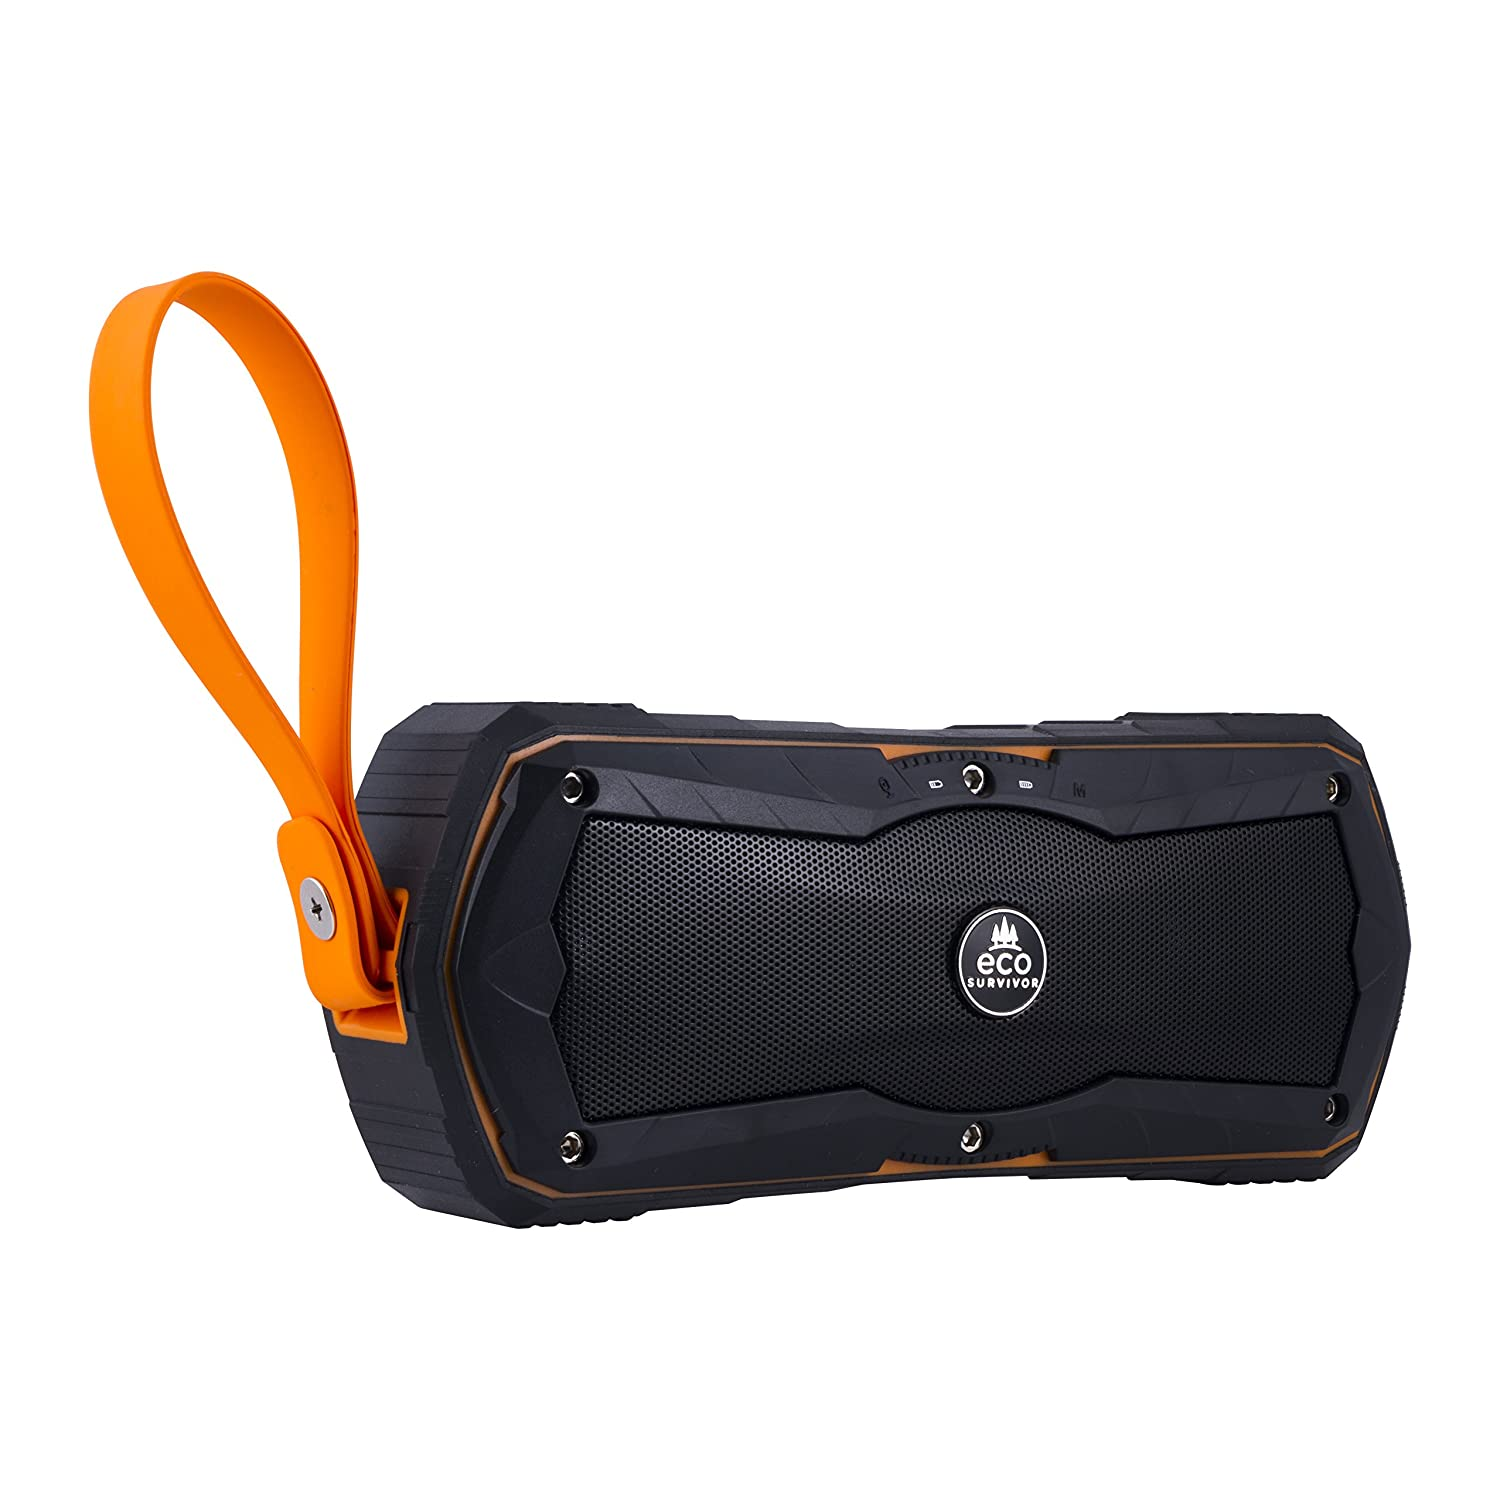 The EcoSurvivor Bluetooth Speaker travel product recommended by Lauren Cozza on Lifney.